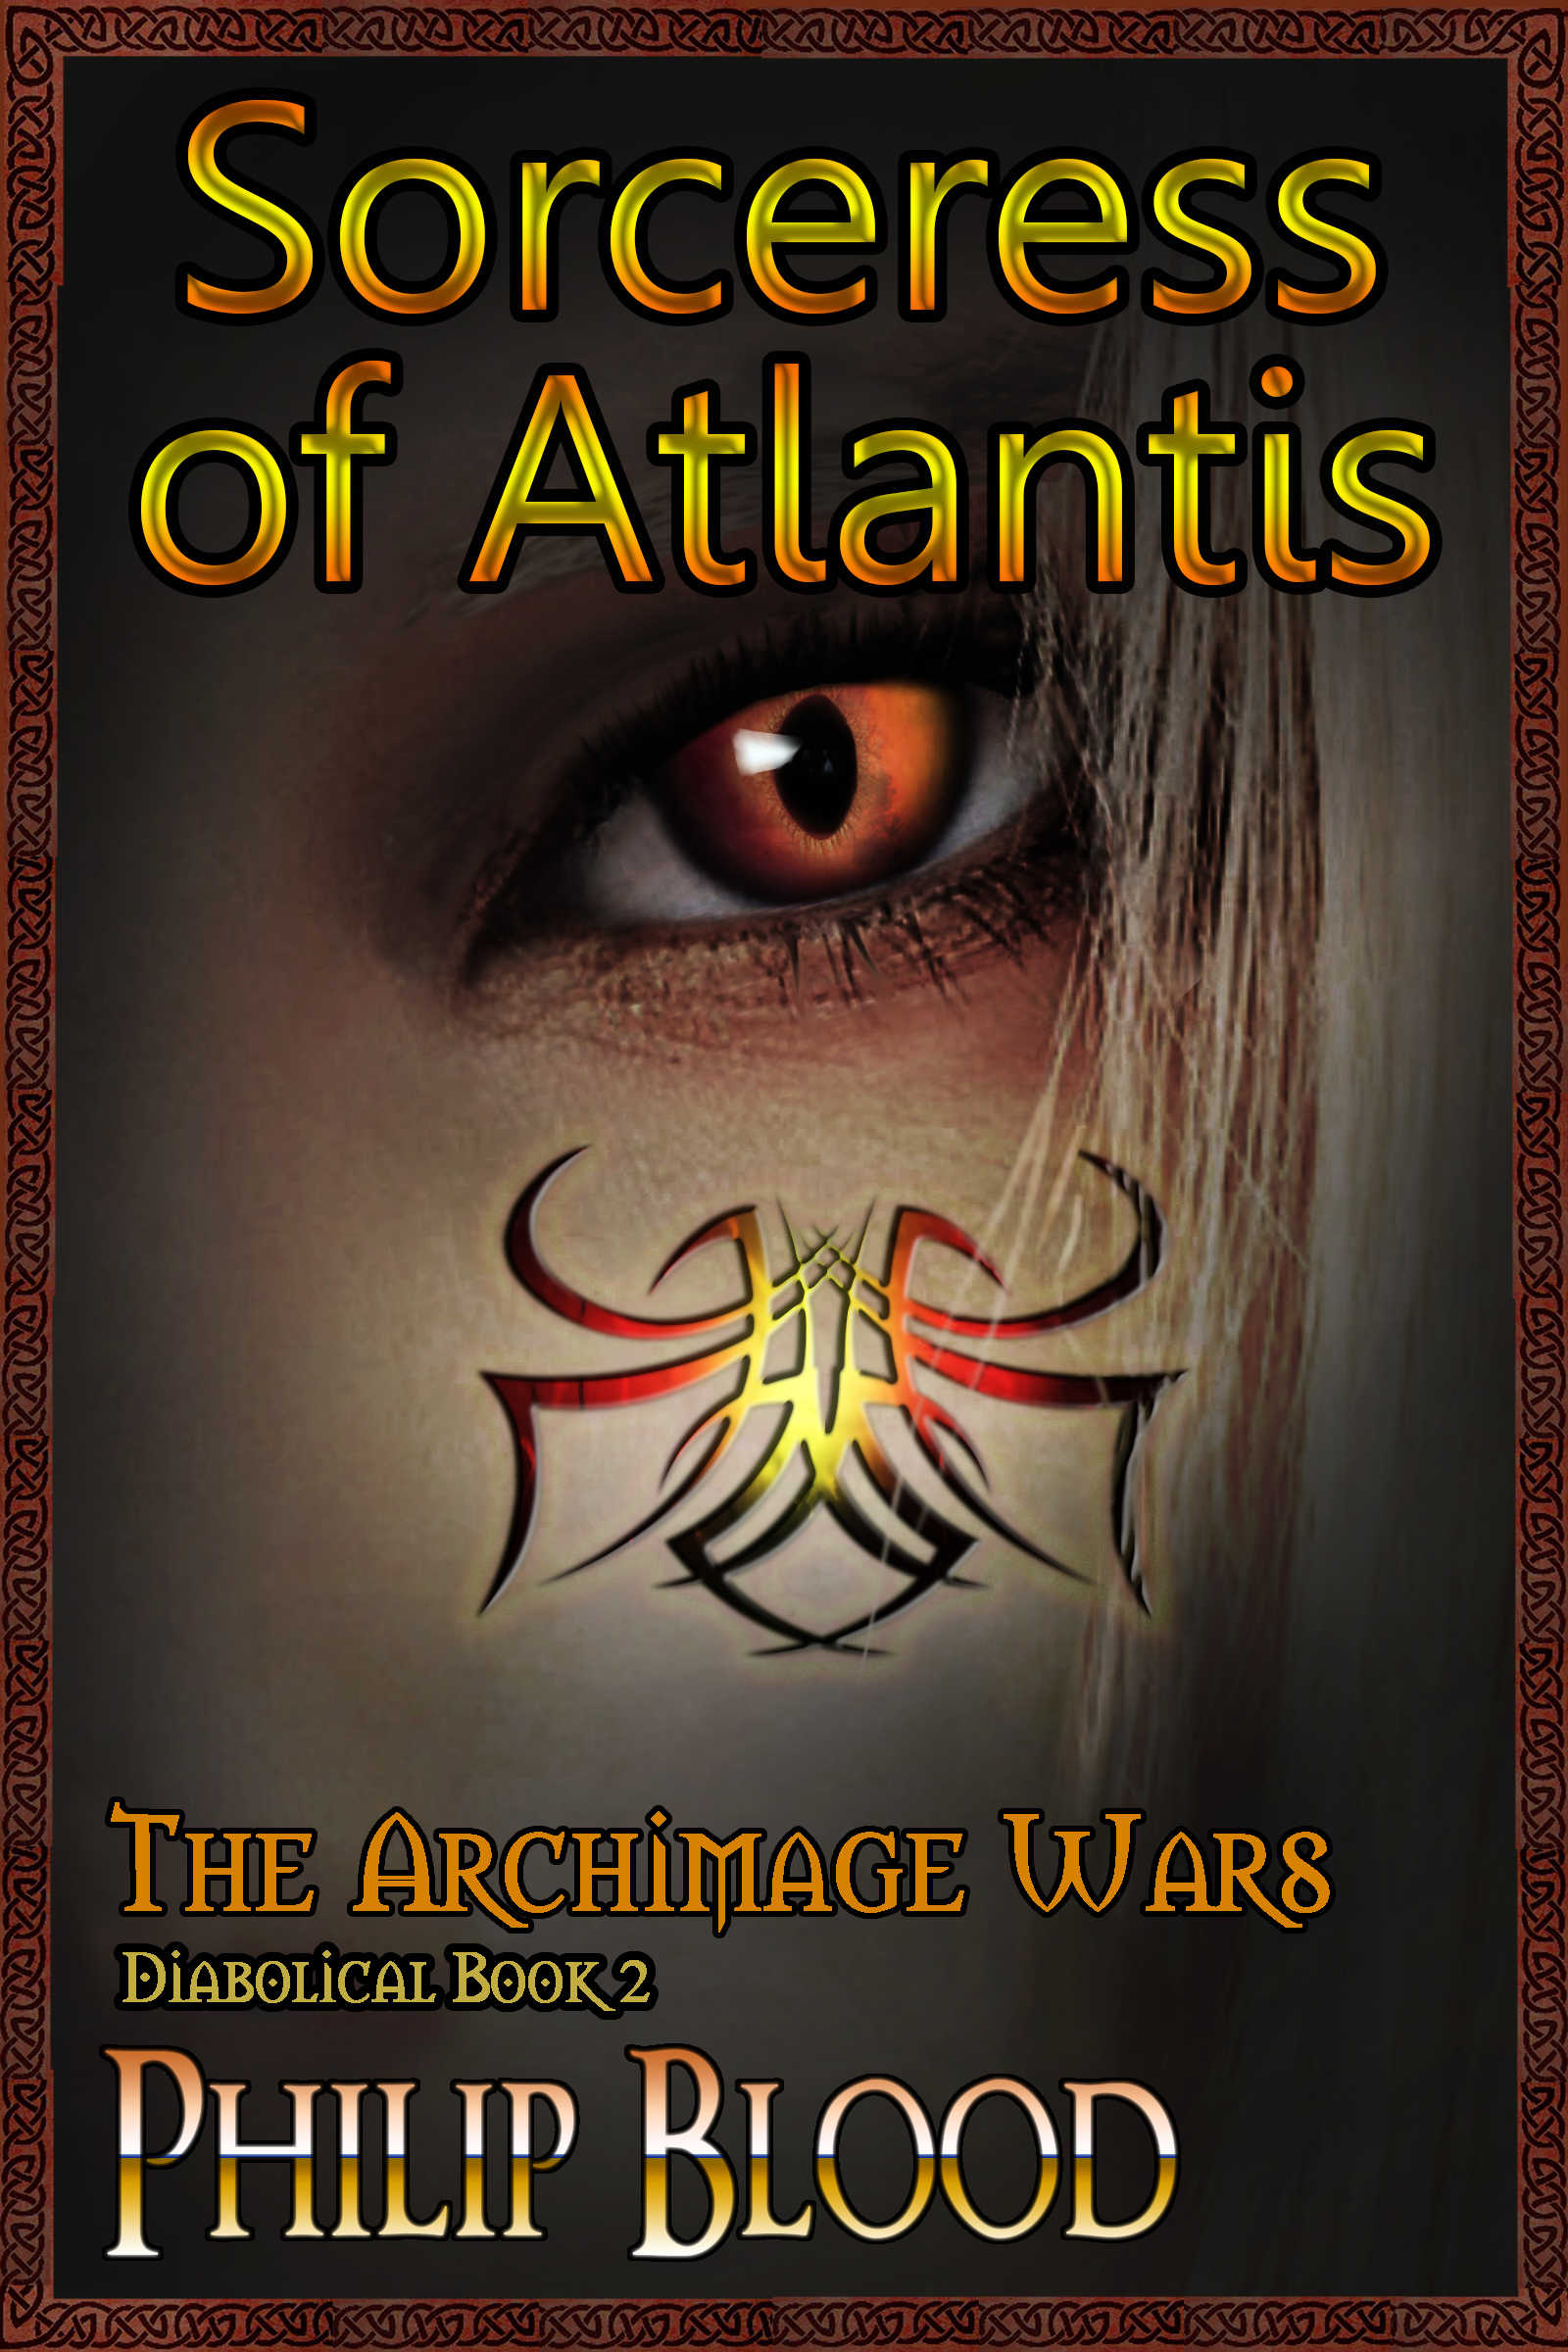 The Sorceress of Atlantis